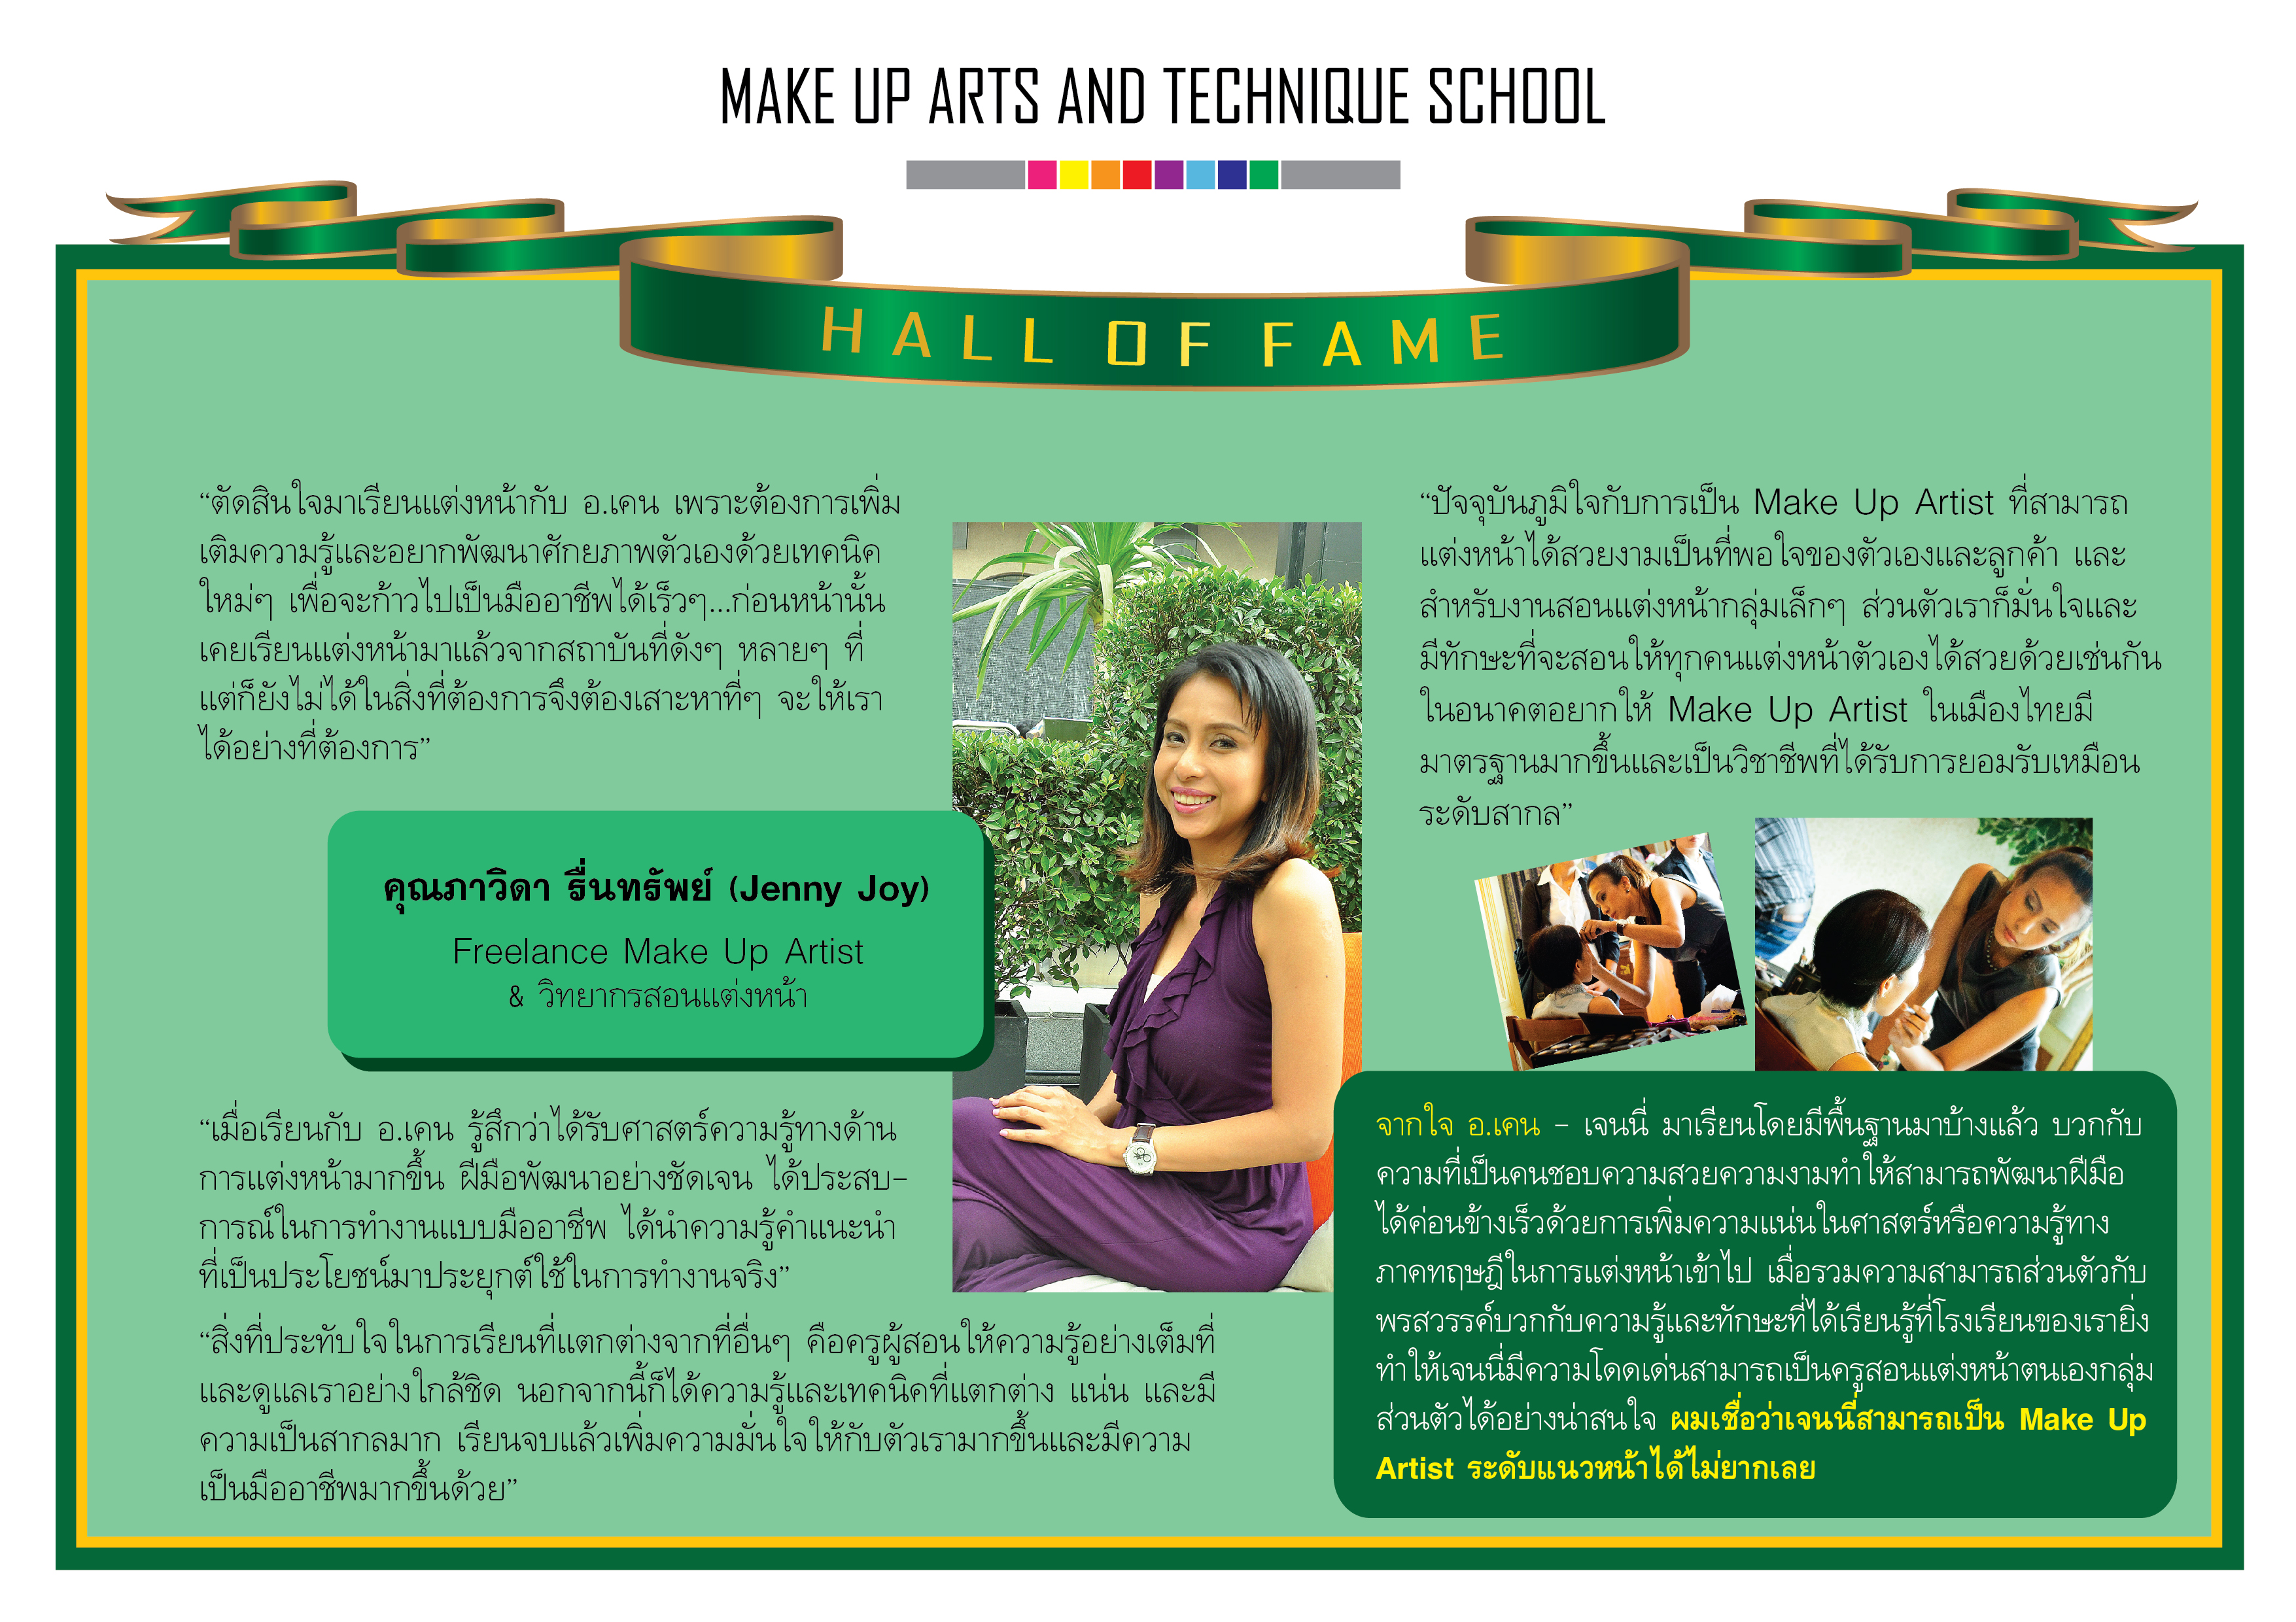 Make Up Arts And Technique School - Hall of Fame - Jenny